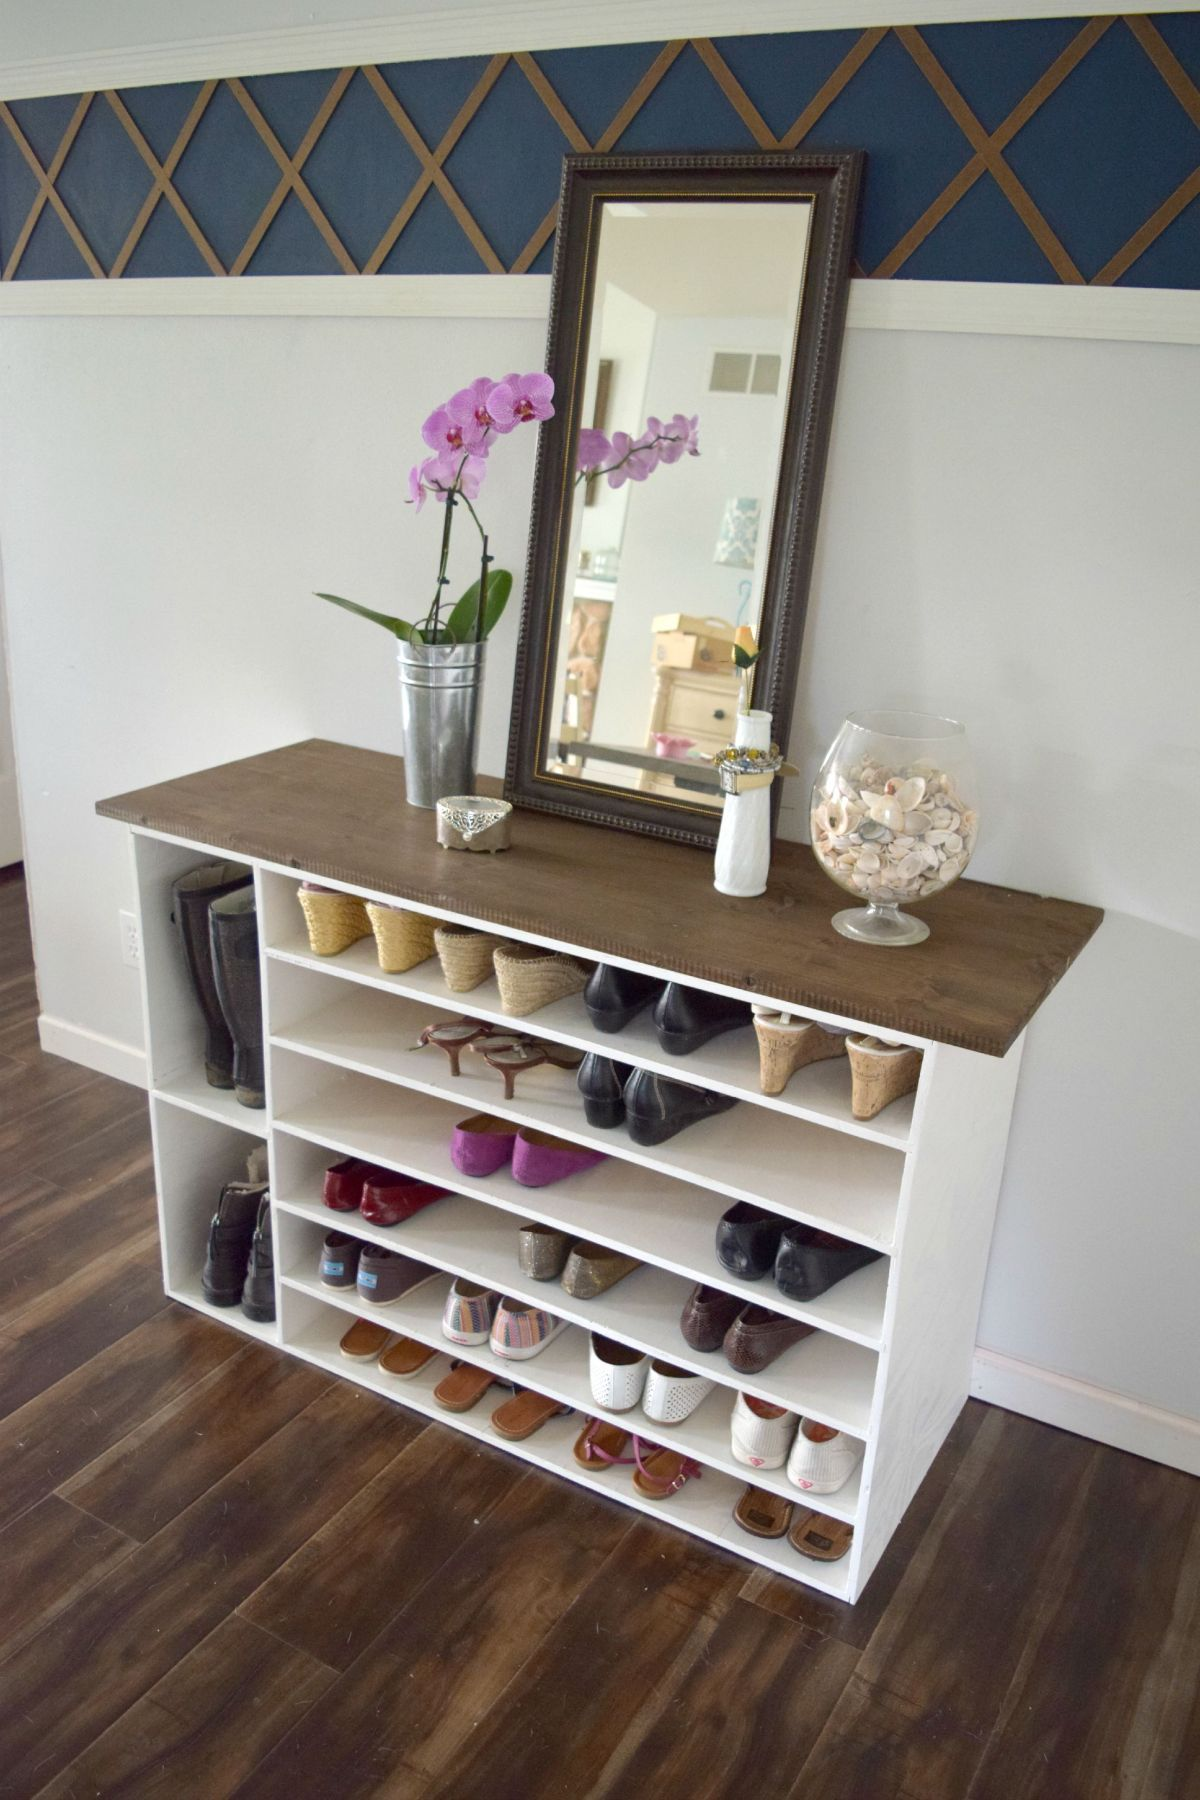 How to make a DIY shoe organizer and rack for the closet This is